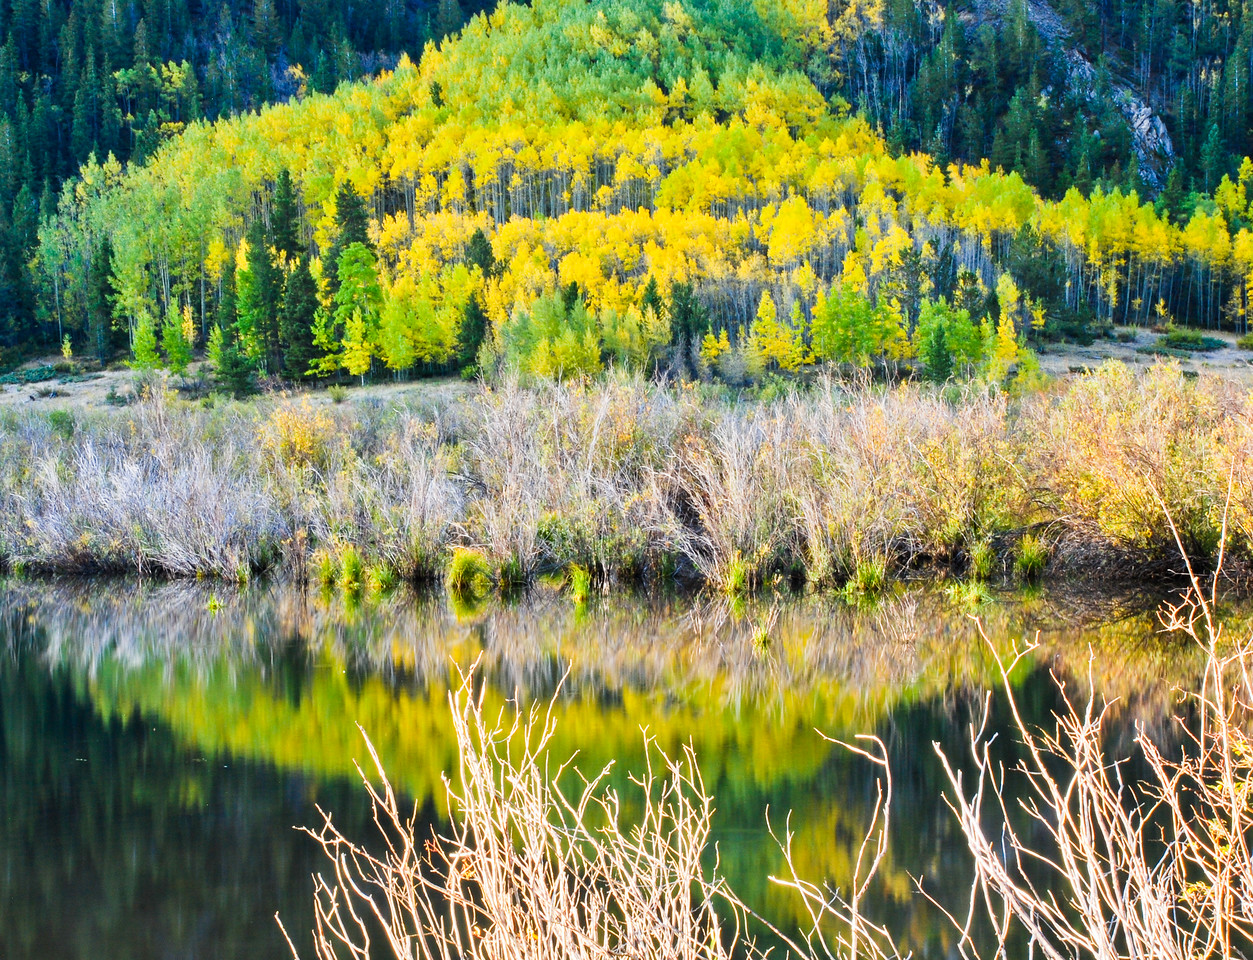 some changing colors, October 2009, approximately 9000' above sea-level, (South)Park County, CO. I did not see Cartman. Yes, I looked for him